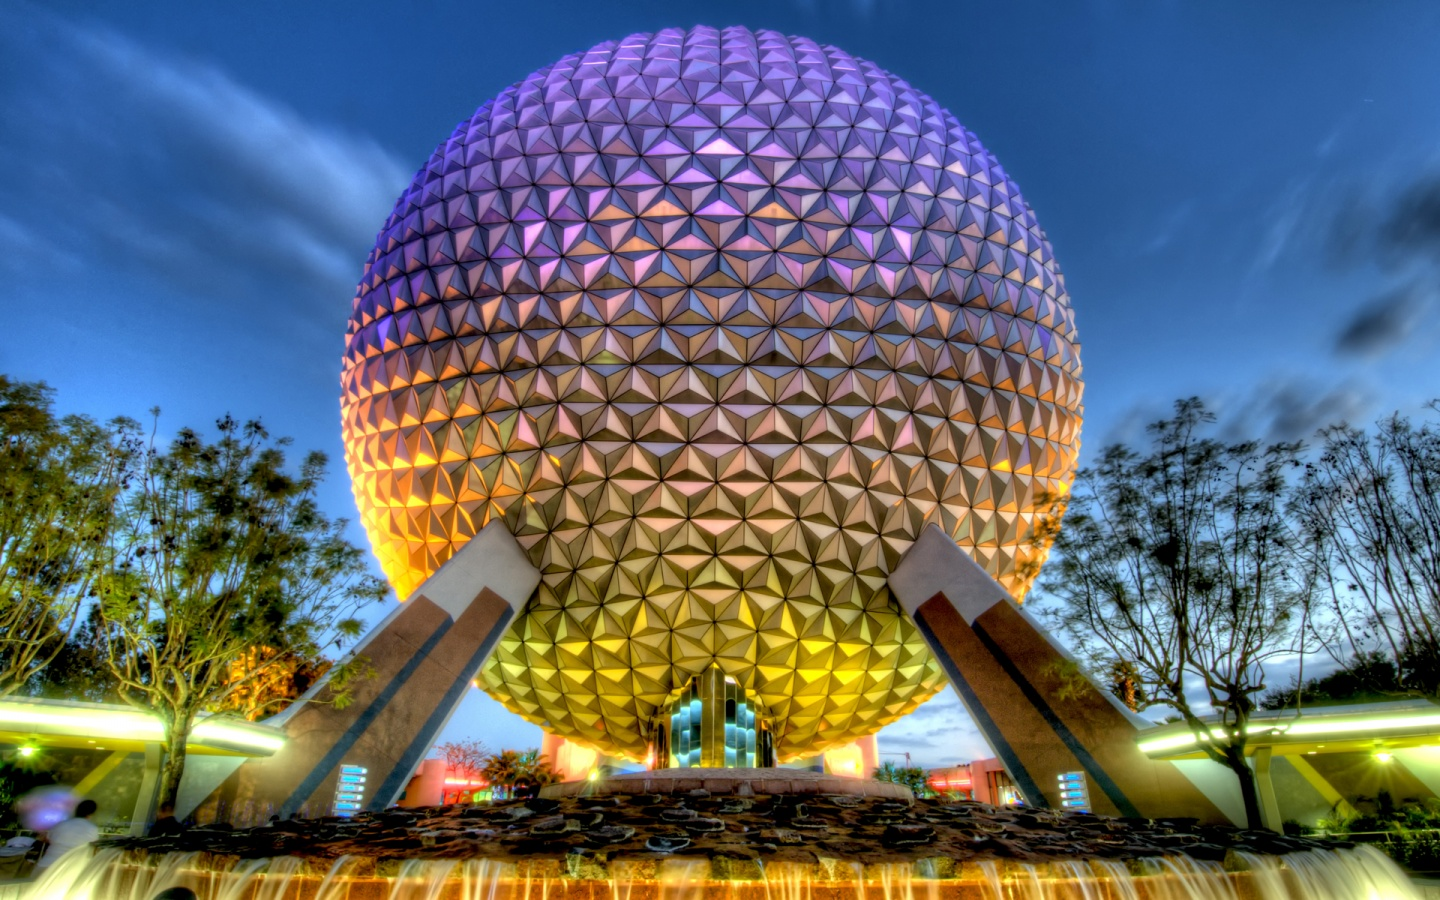 spaceship_earth-1440x900